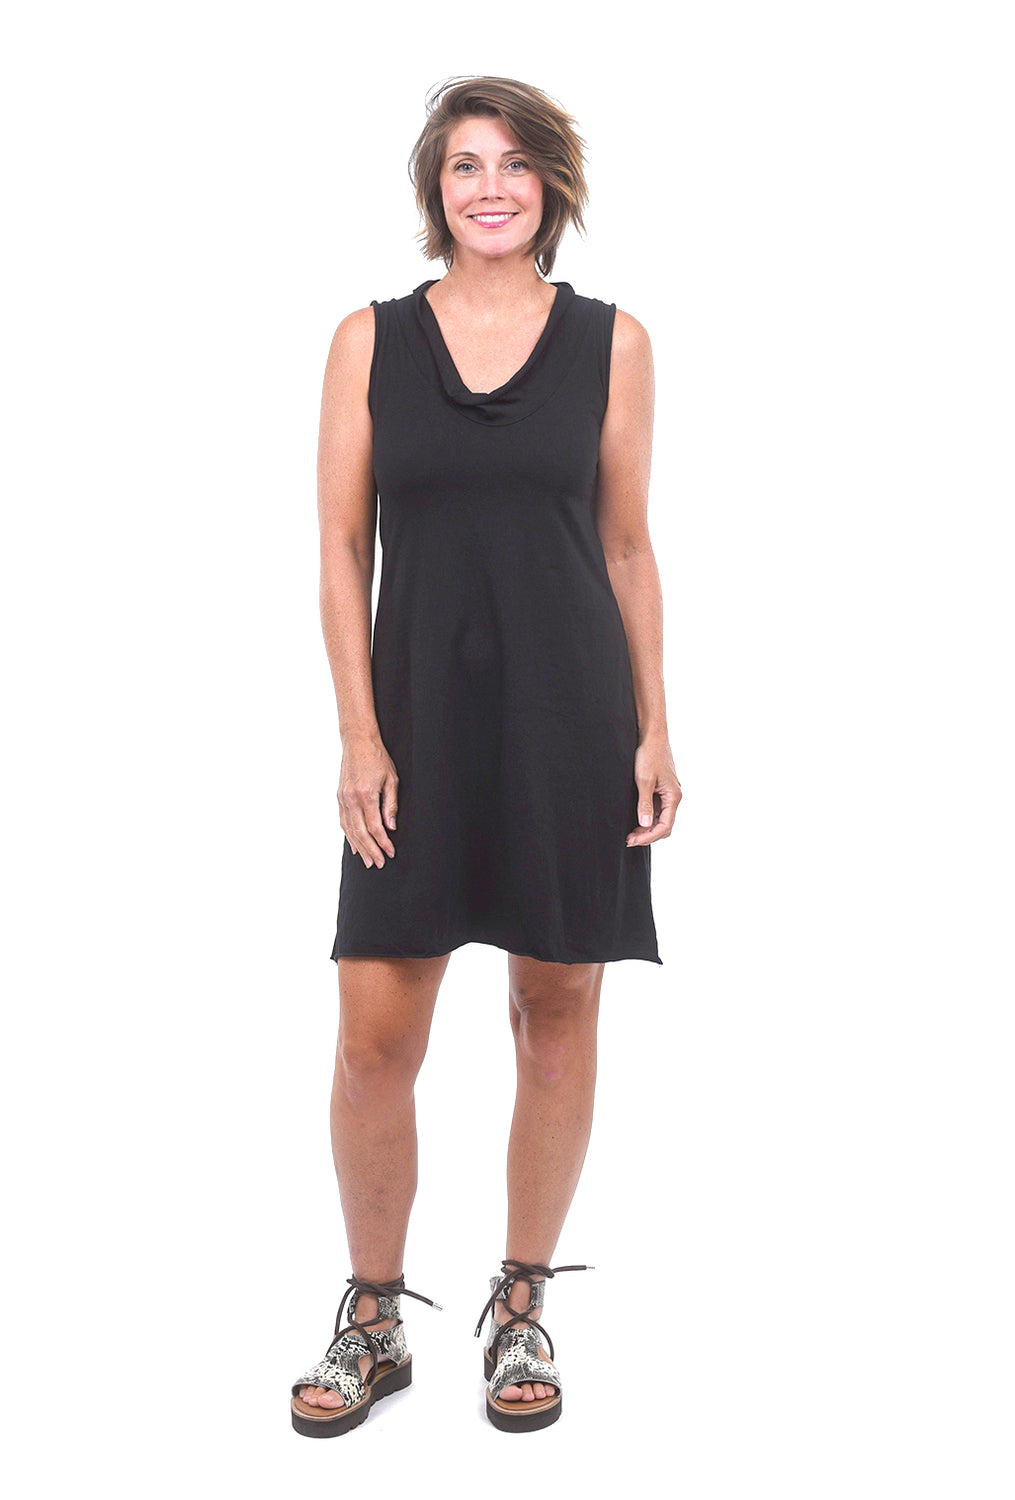 Prairie Underground S/L Falconet Dress, Black